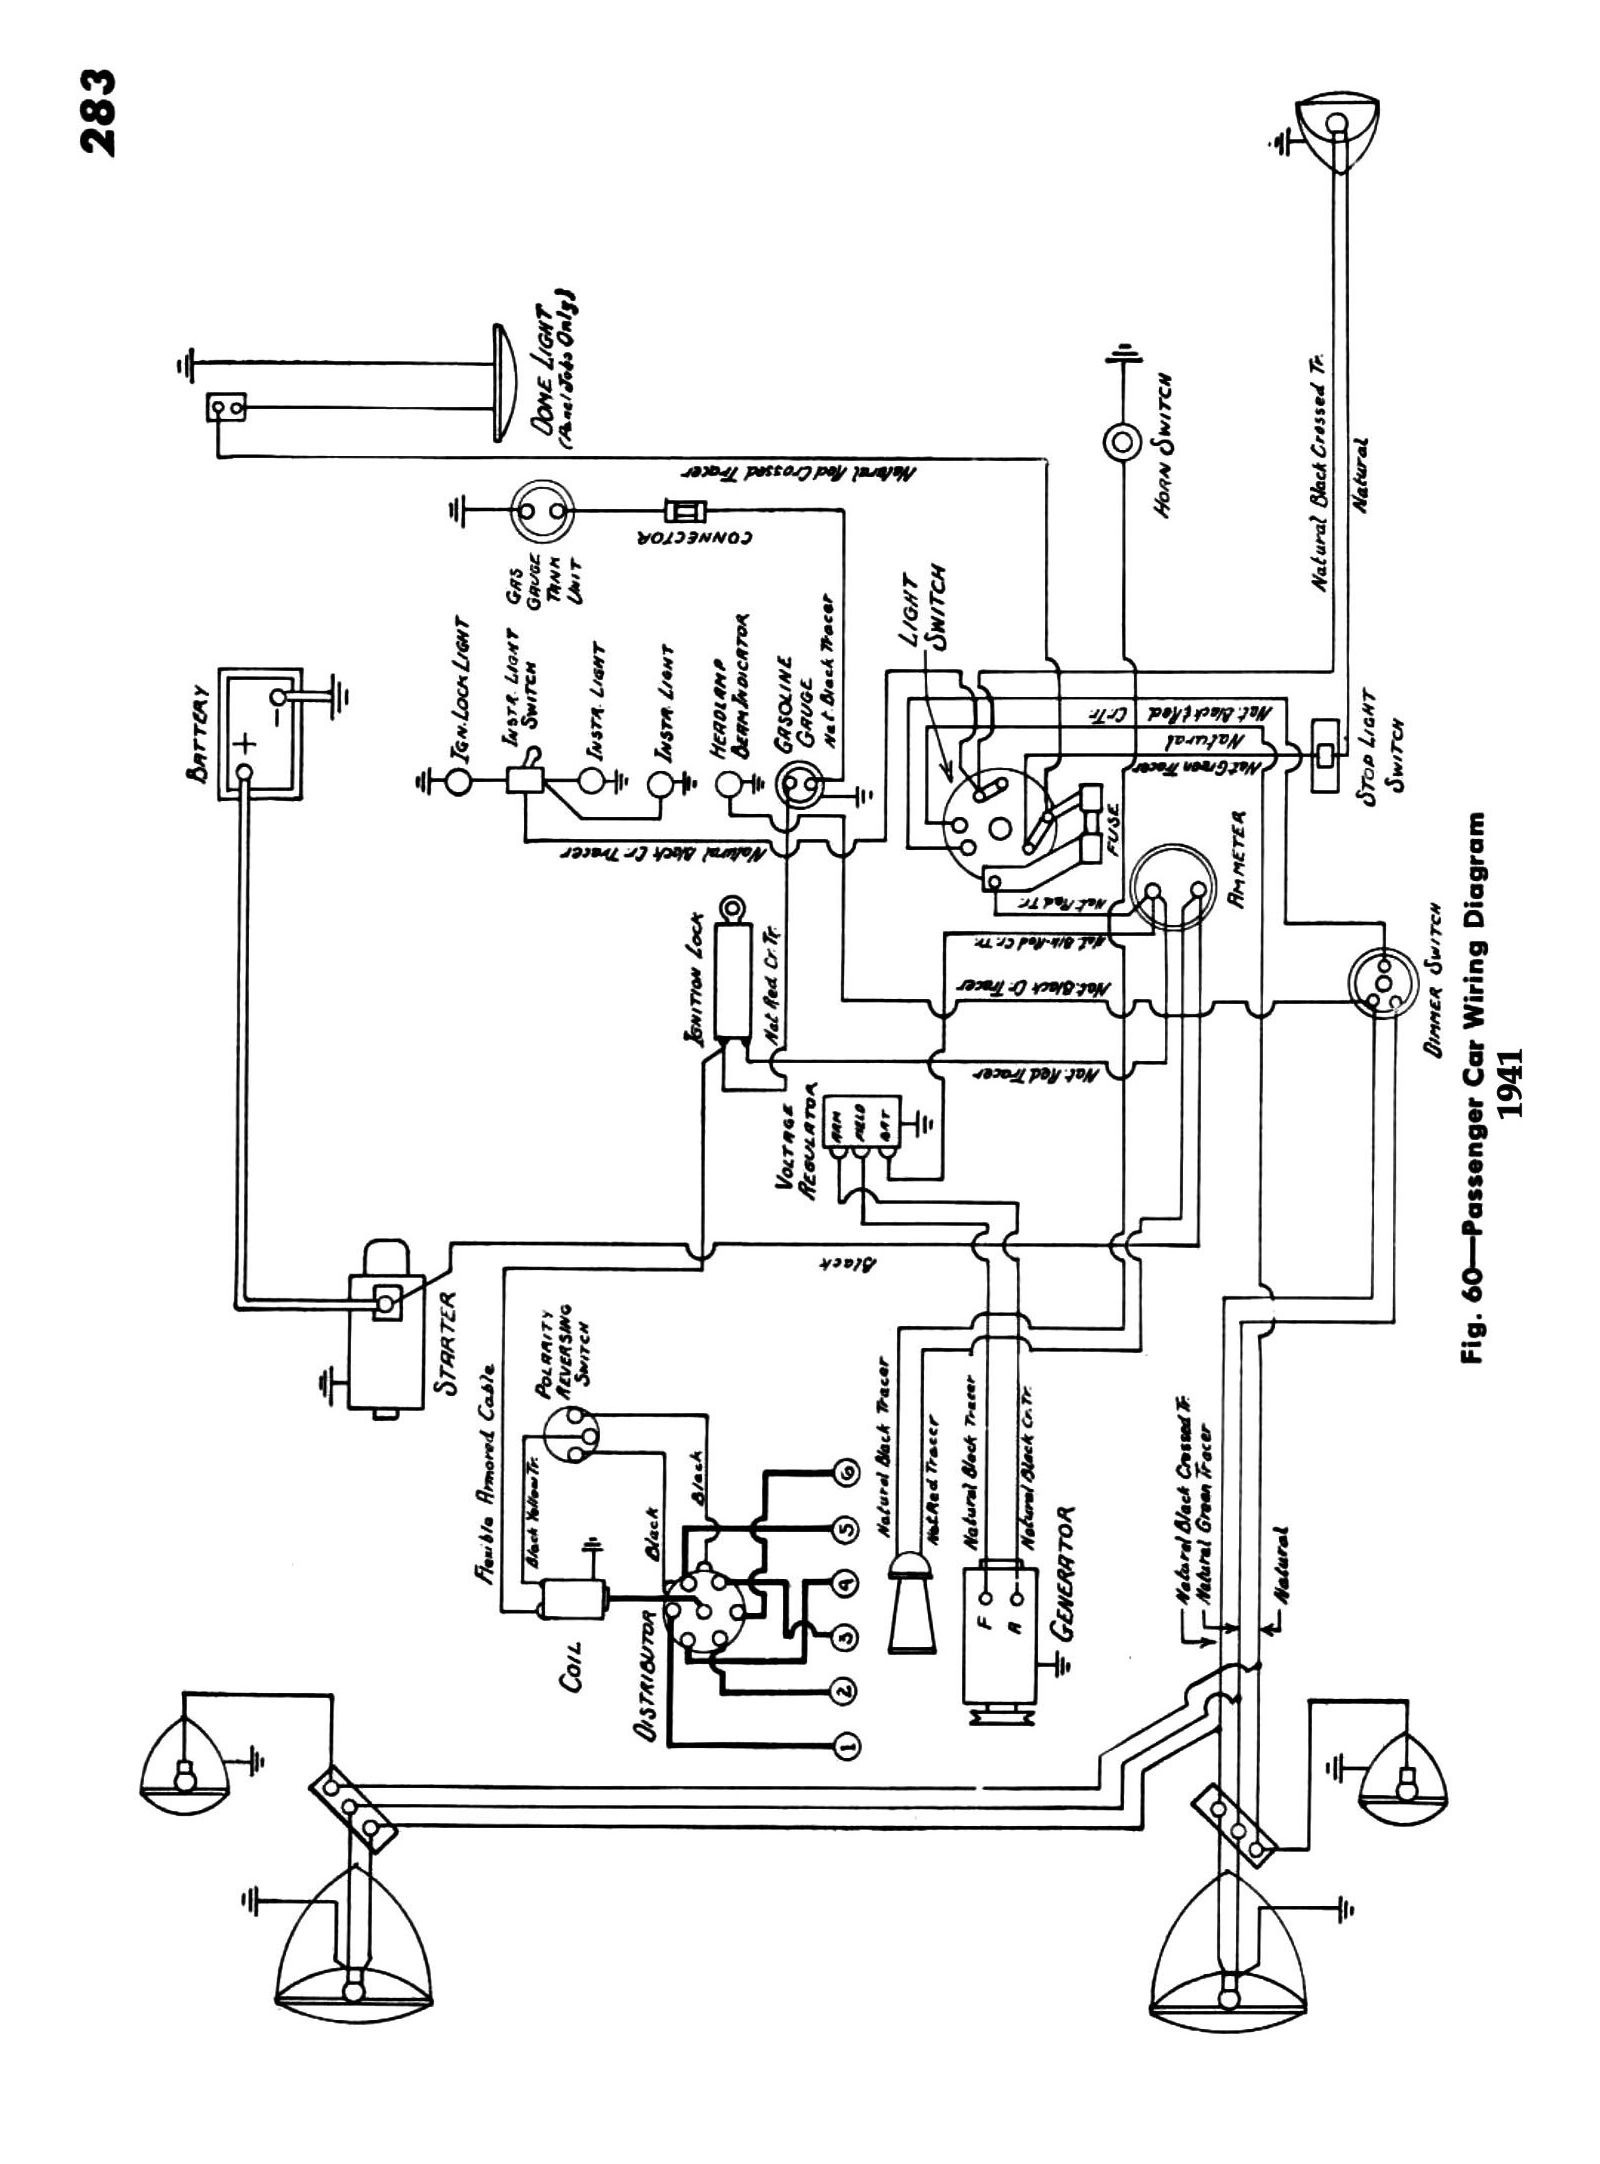 41csm283 chevy wiring diagrams 1946 ford truck wiring diagram at gsmx.co